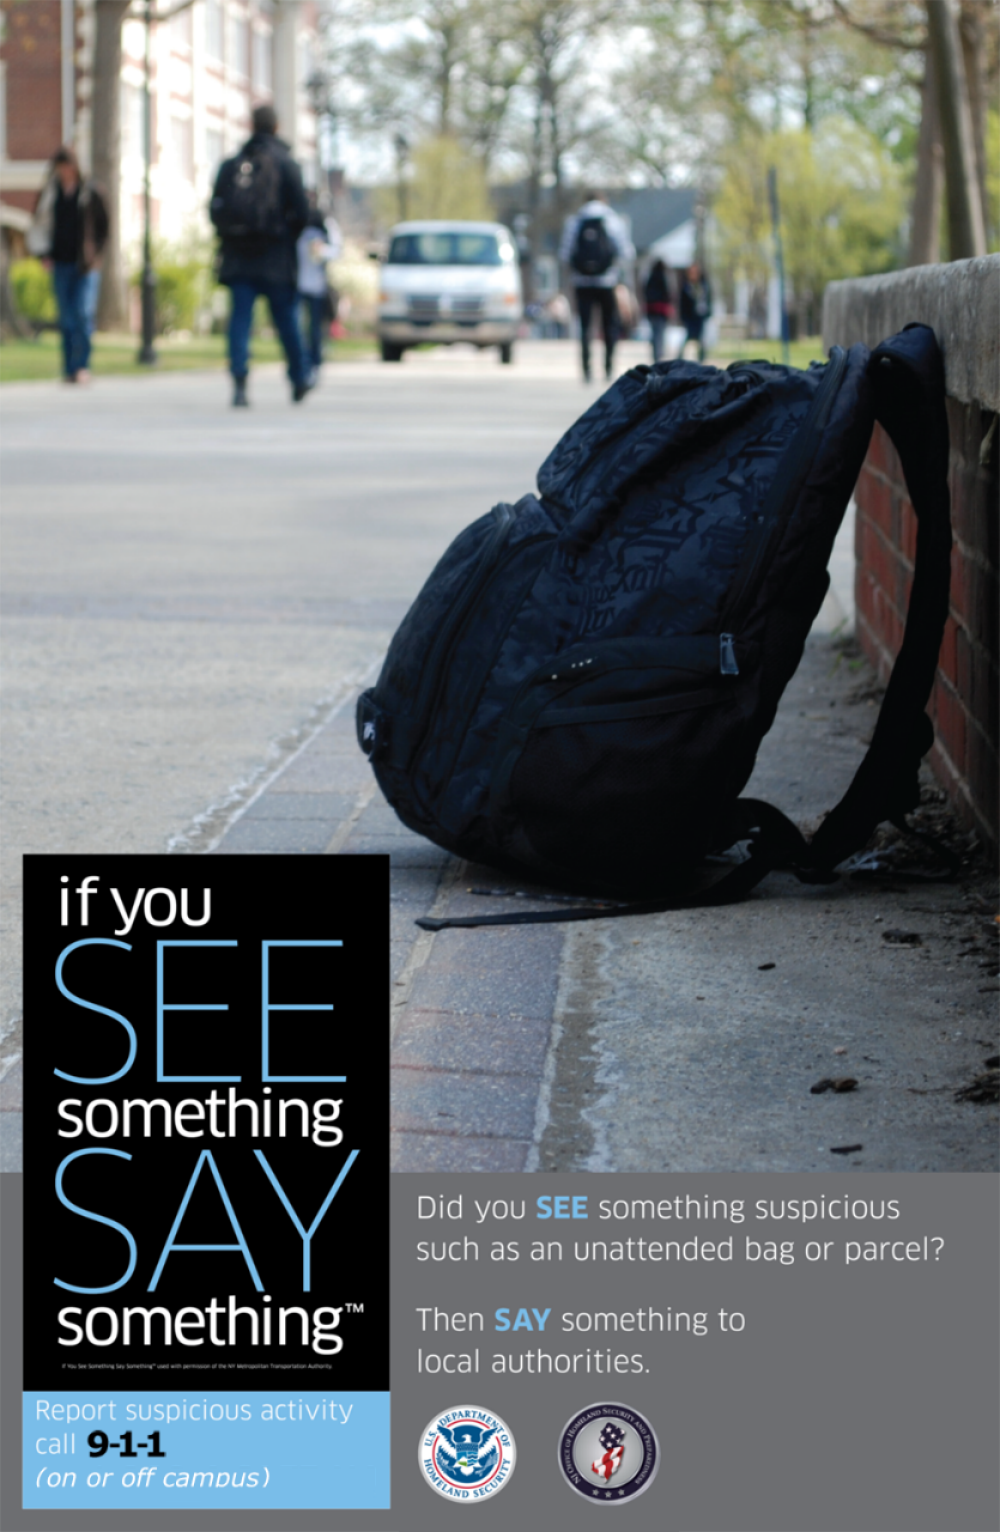 If you see something, say omething, on or off campus